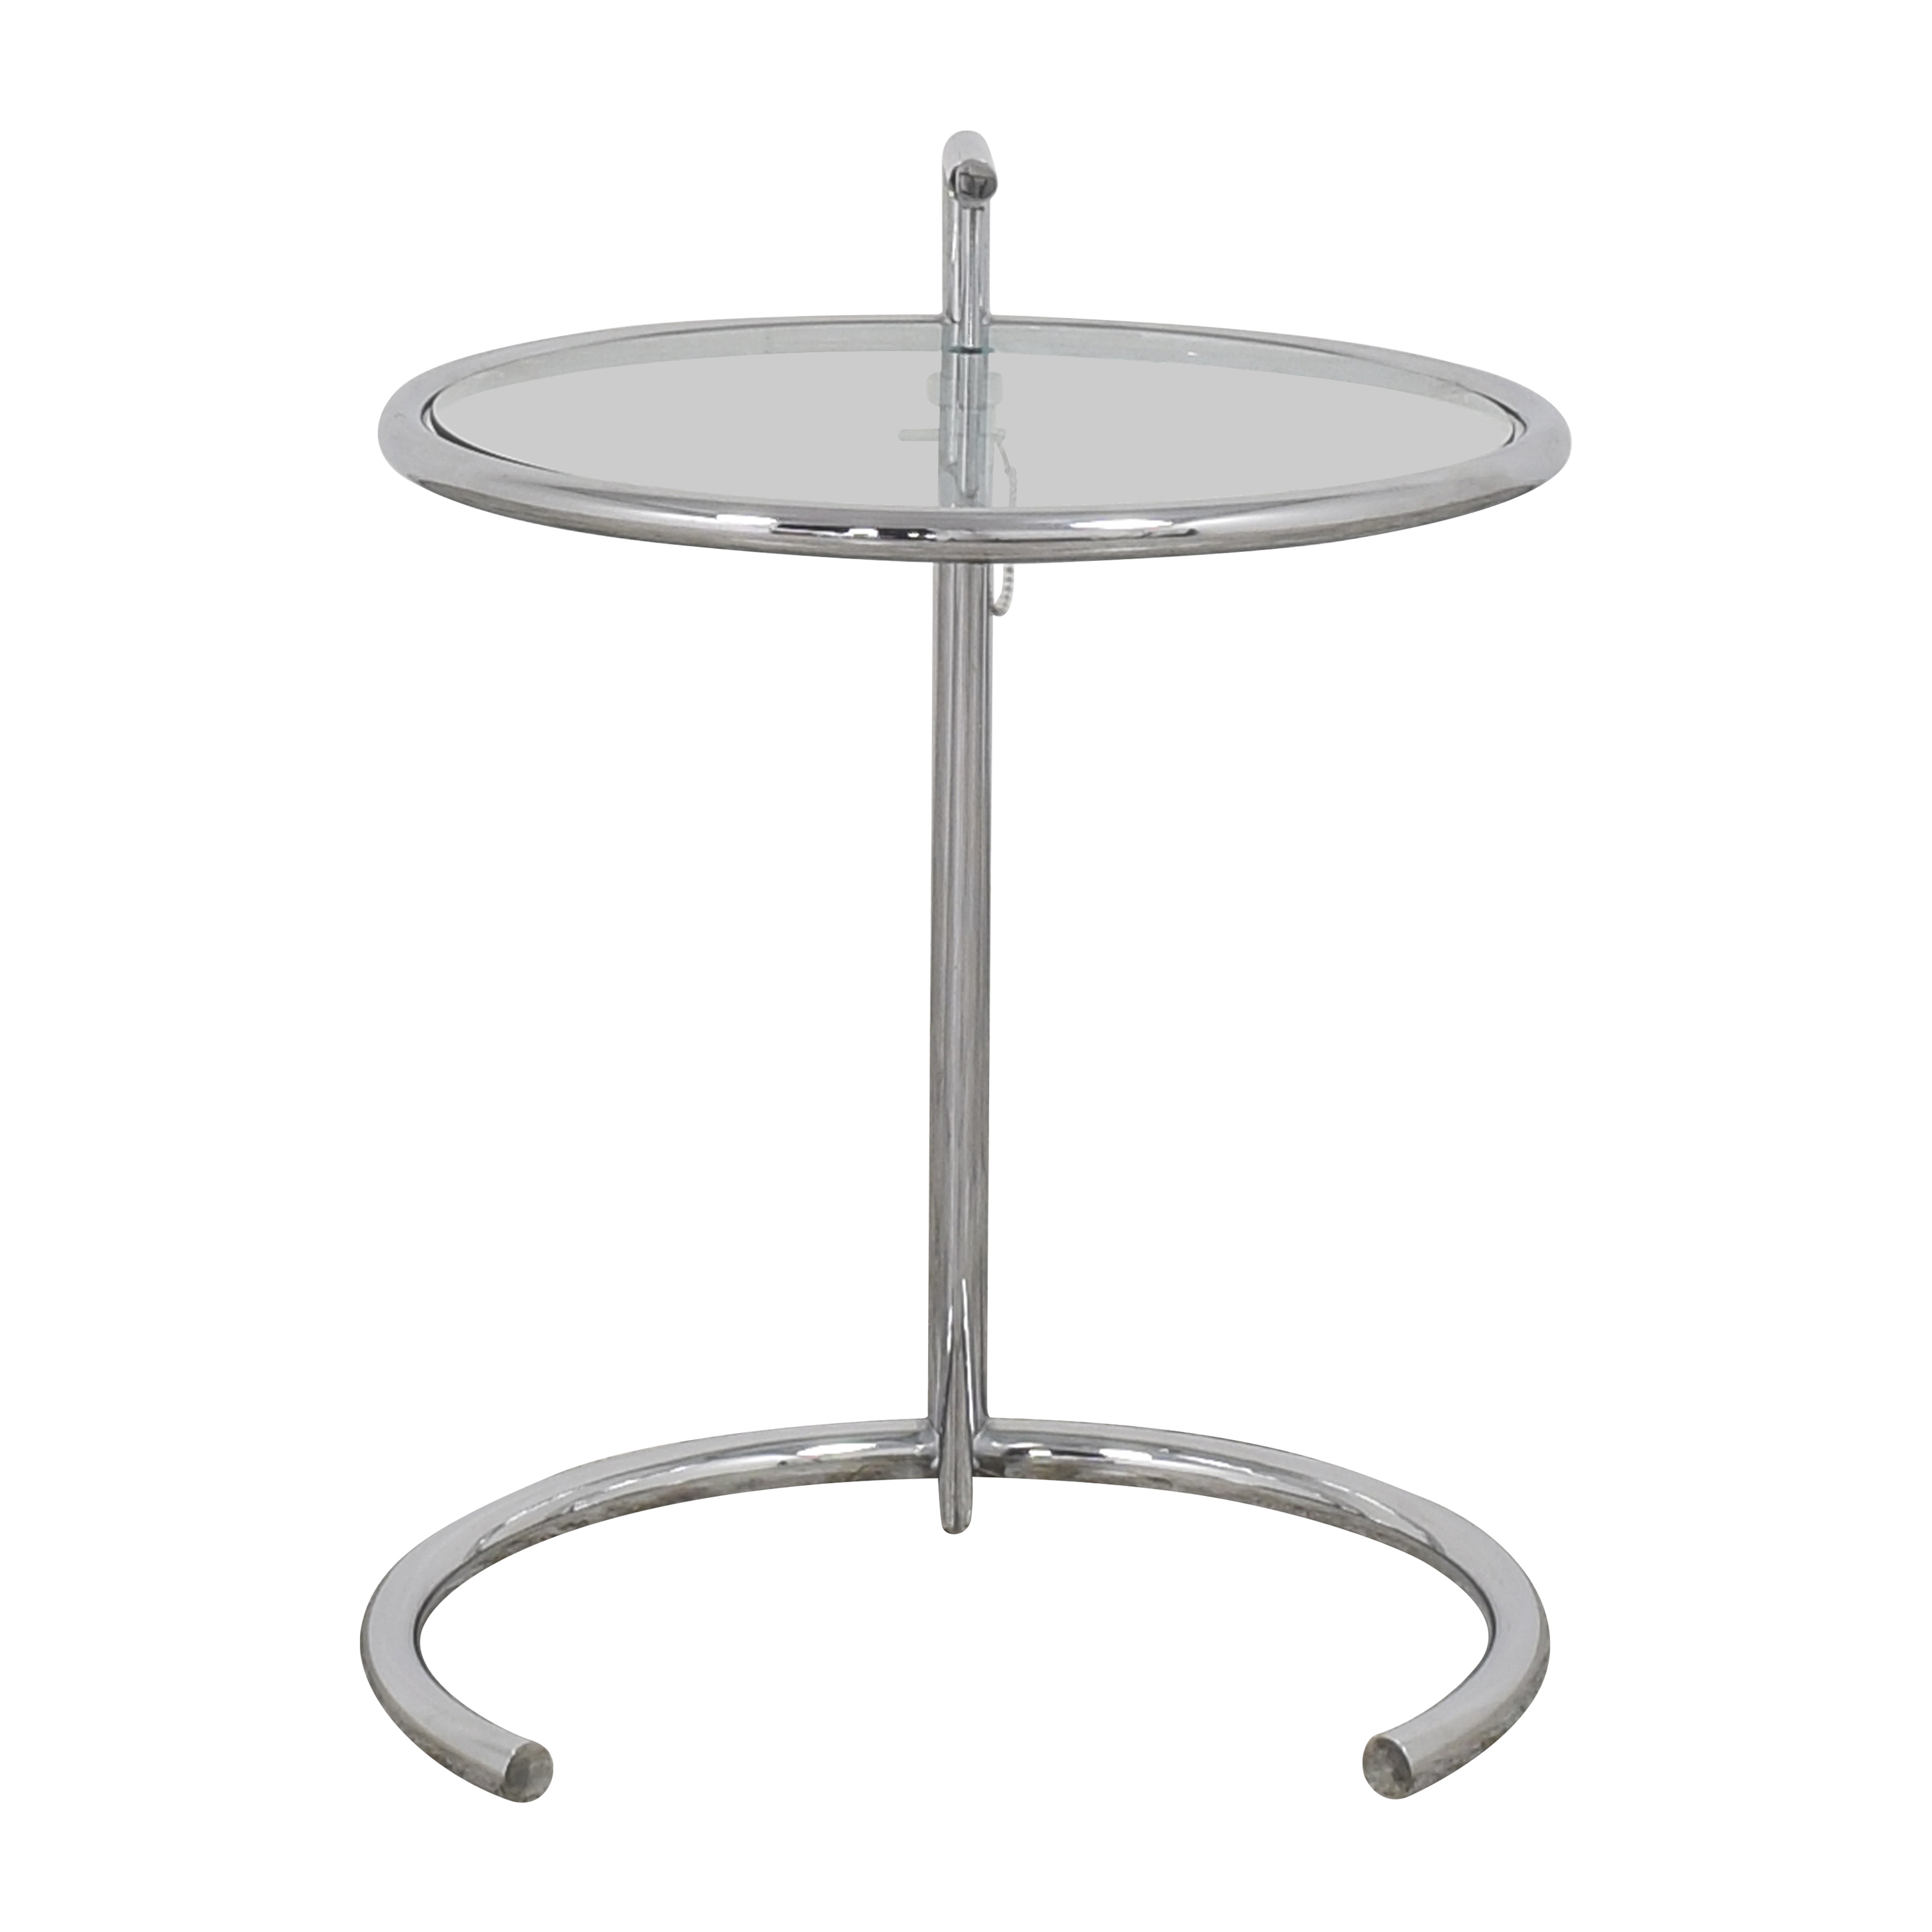 Eileen Gray Style Adjustable End Table dimensions